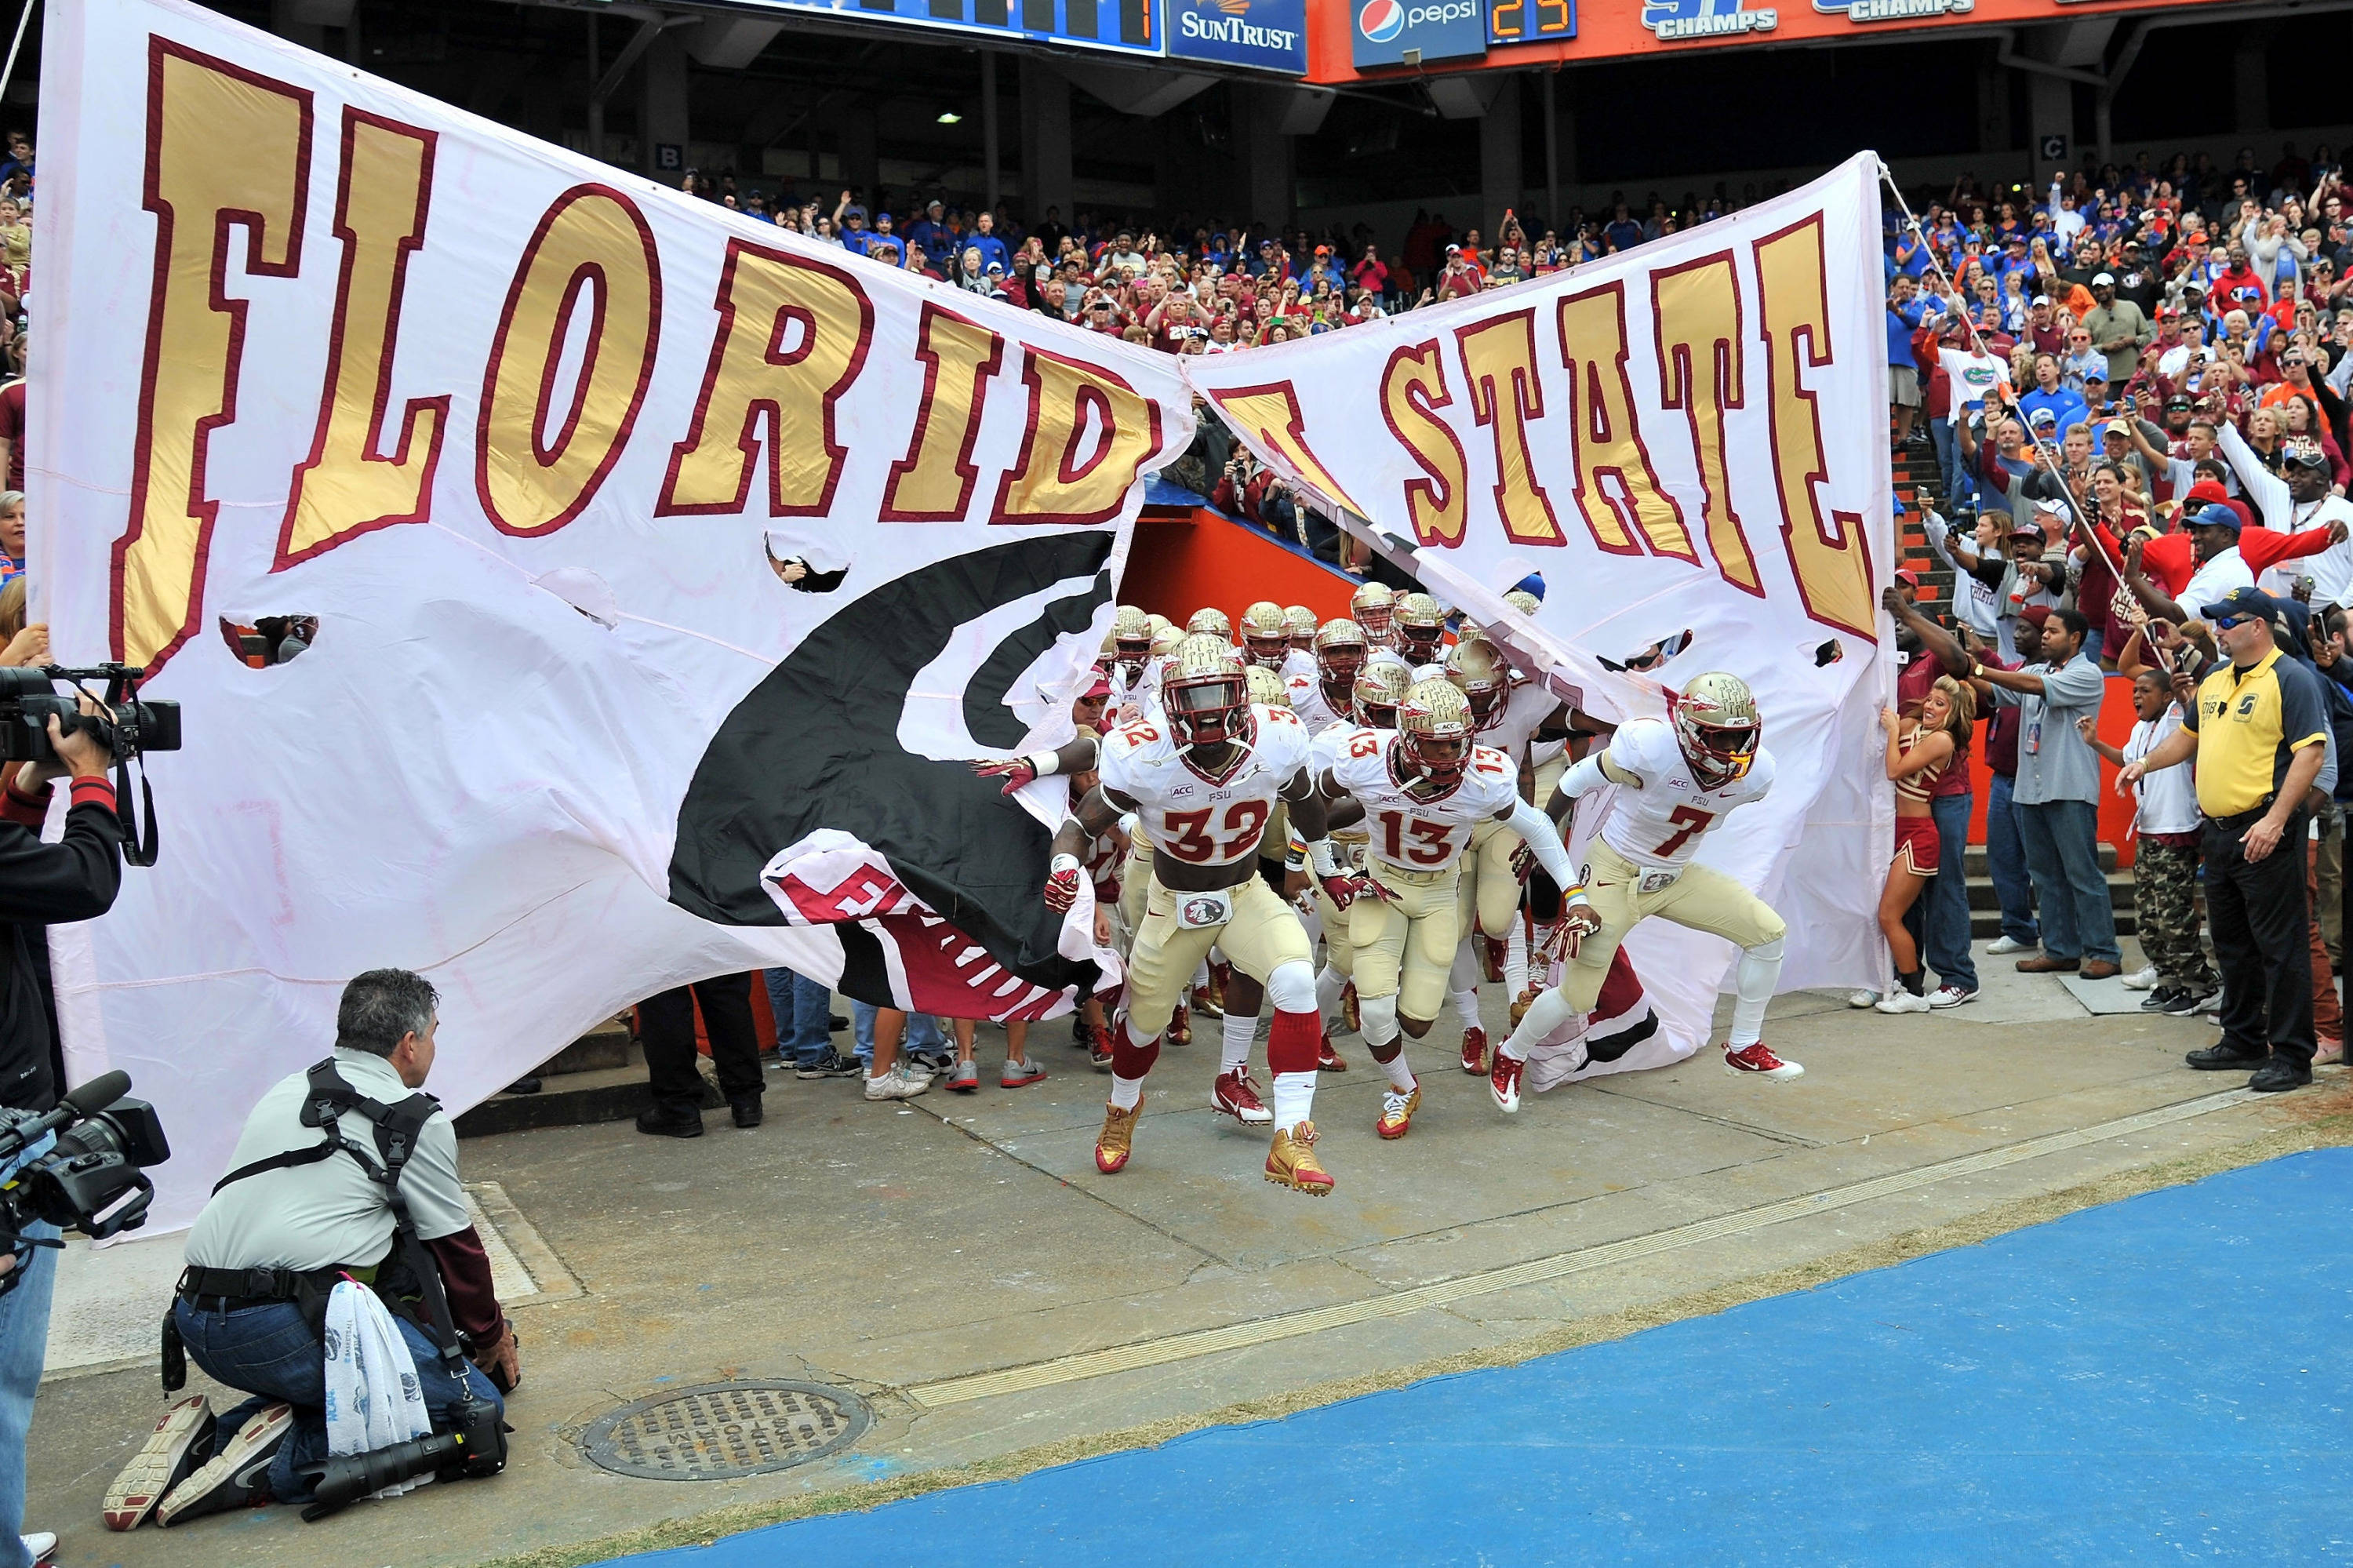 Florida State Seminoles players take the field. Mandatory Credit: Steve Mitchell-USA TODAY Sports